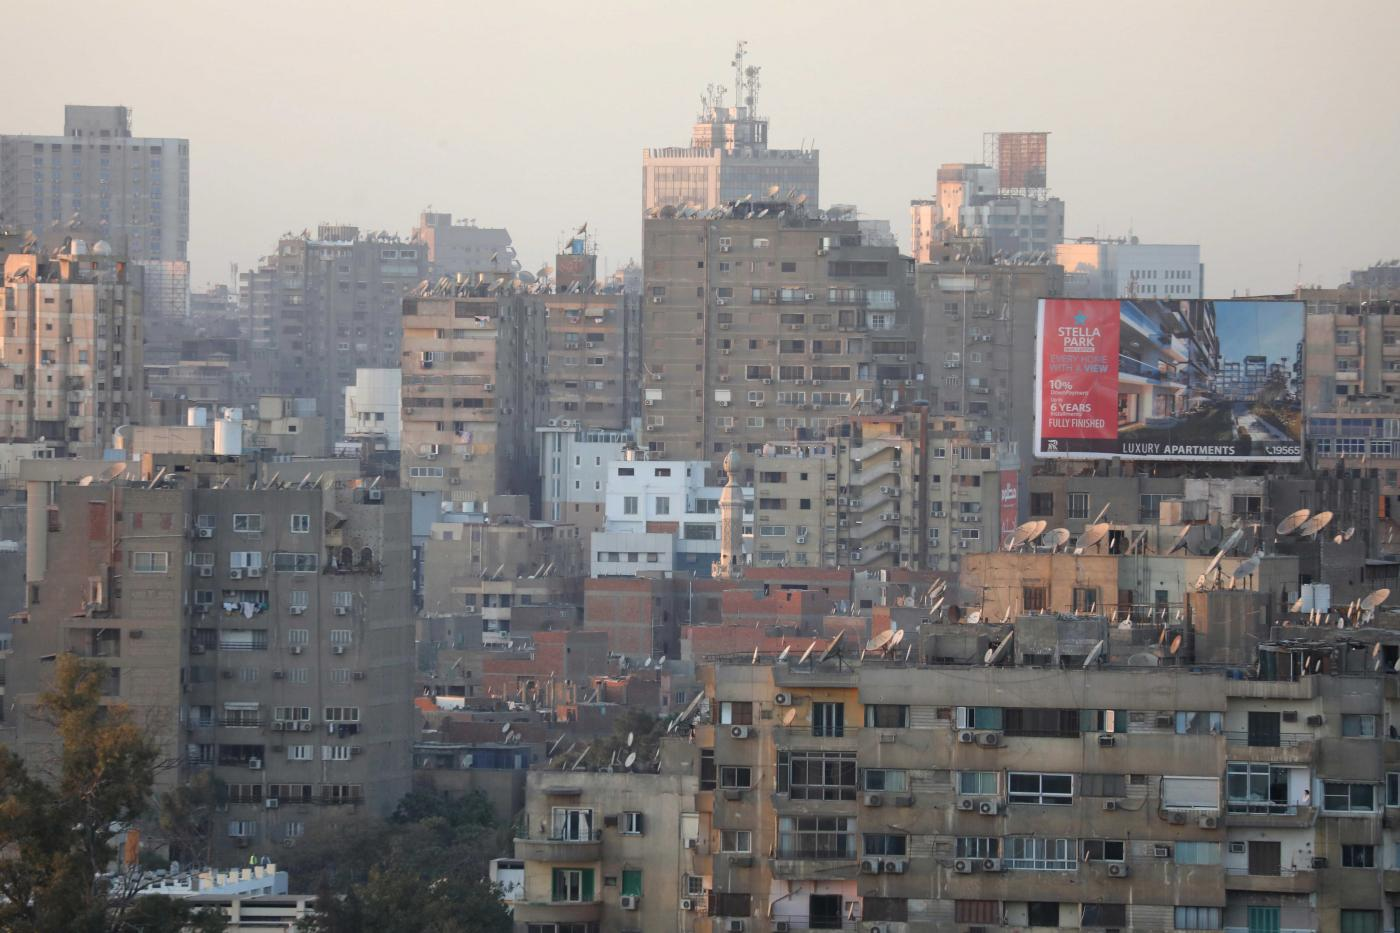 Egypt police arrest 3 journalists in news site raid